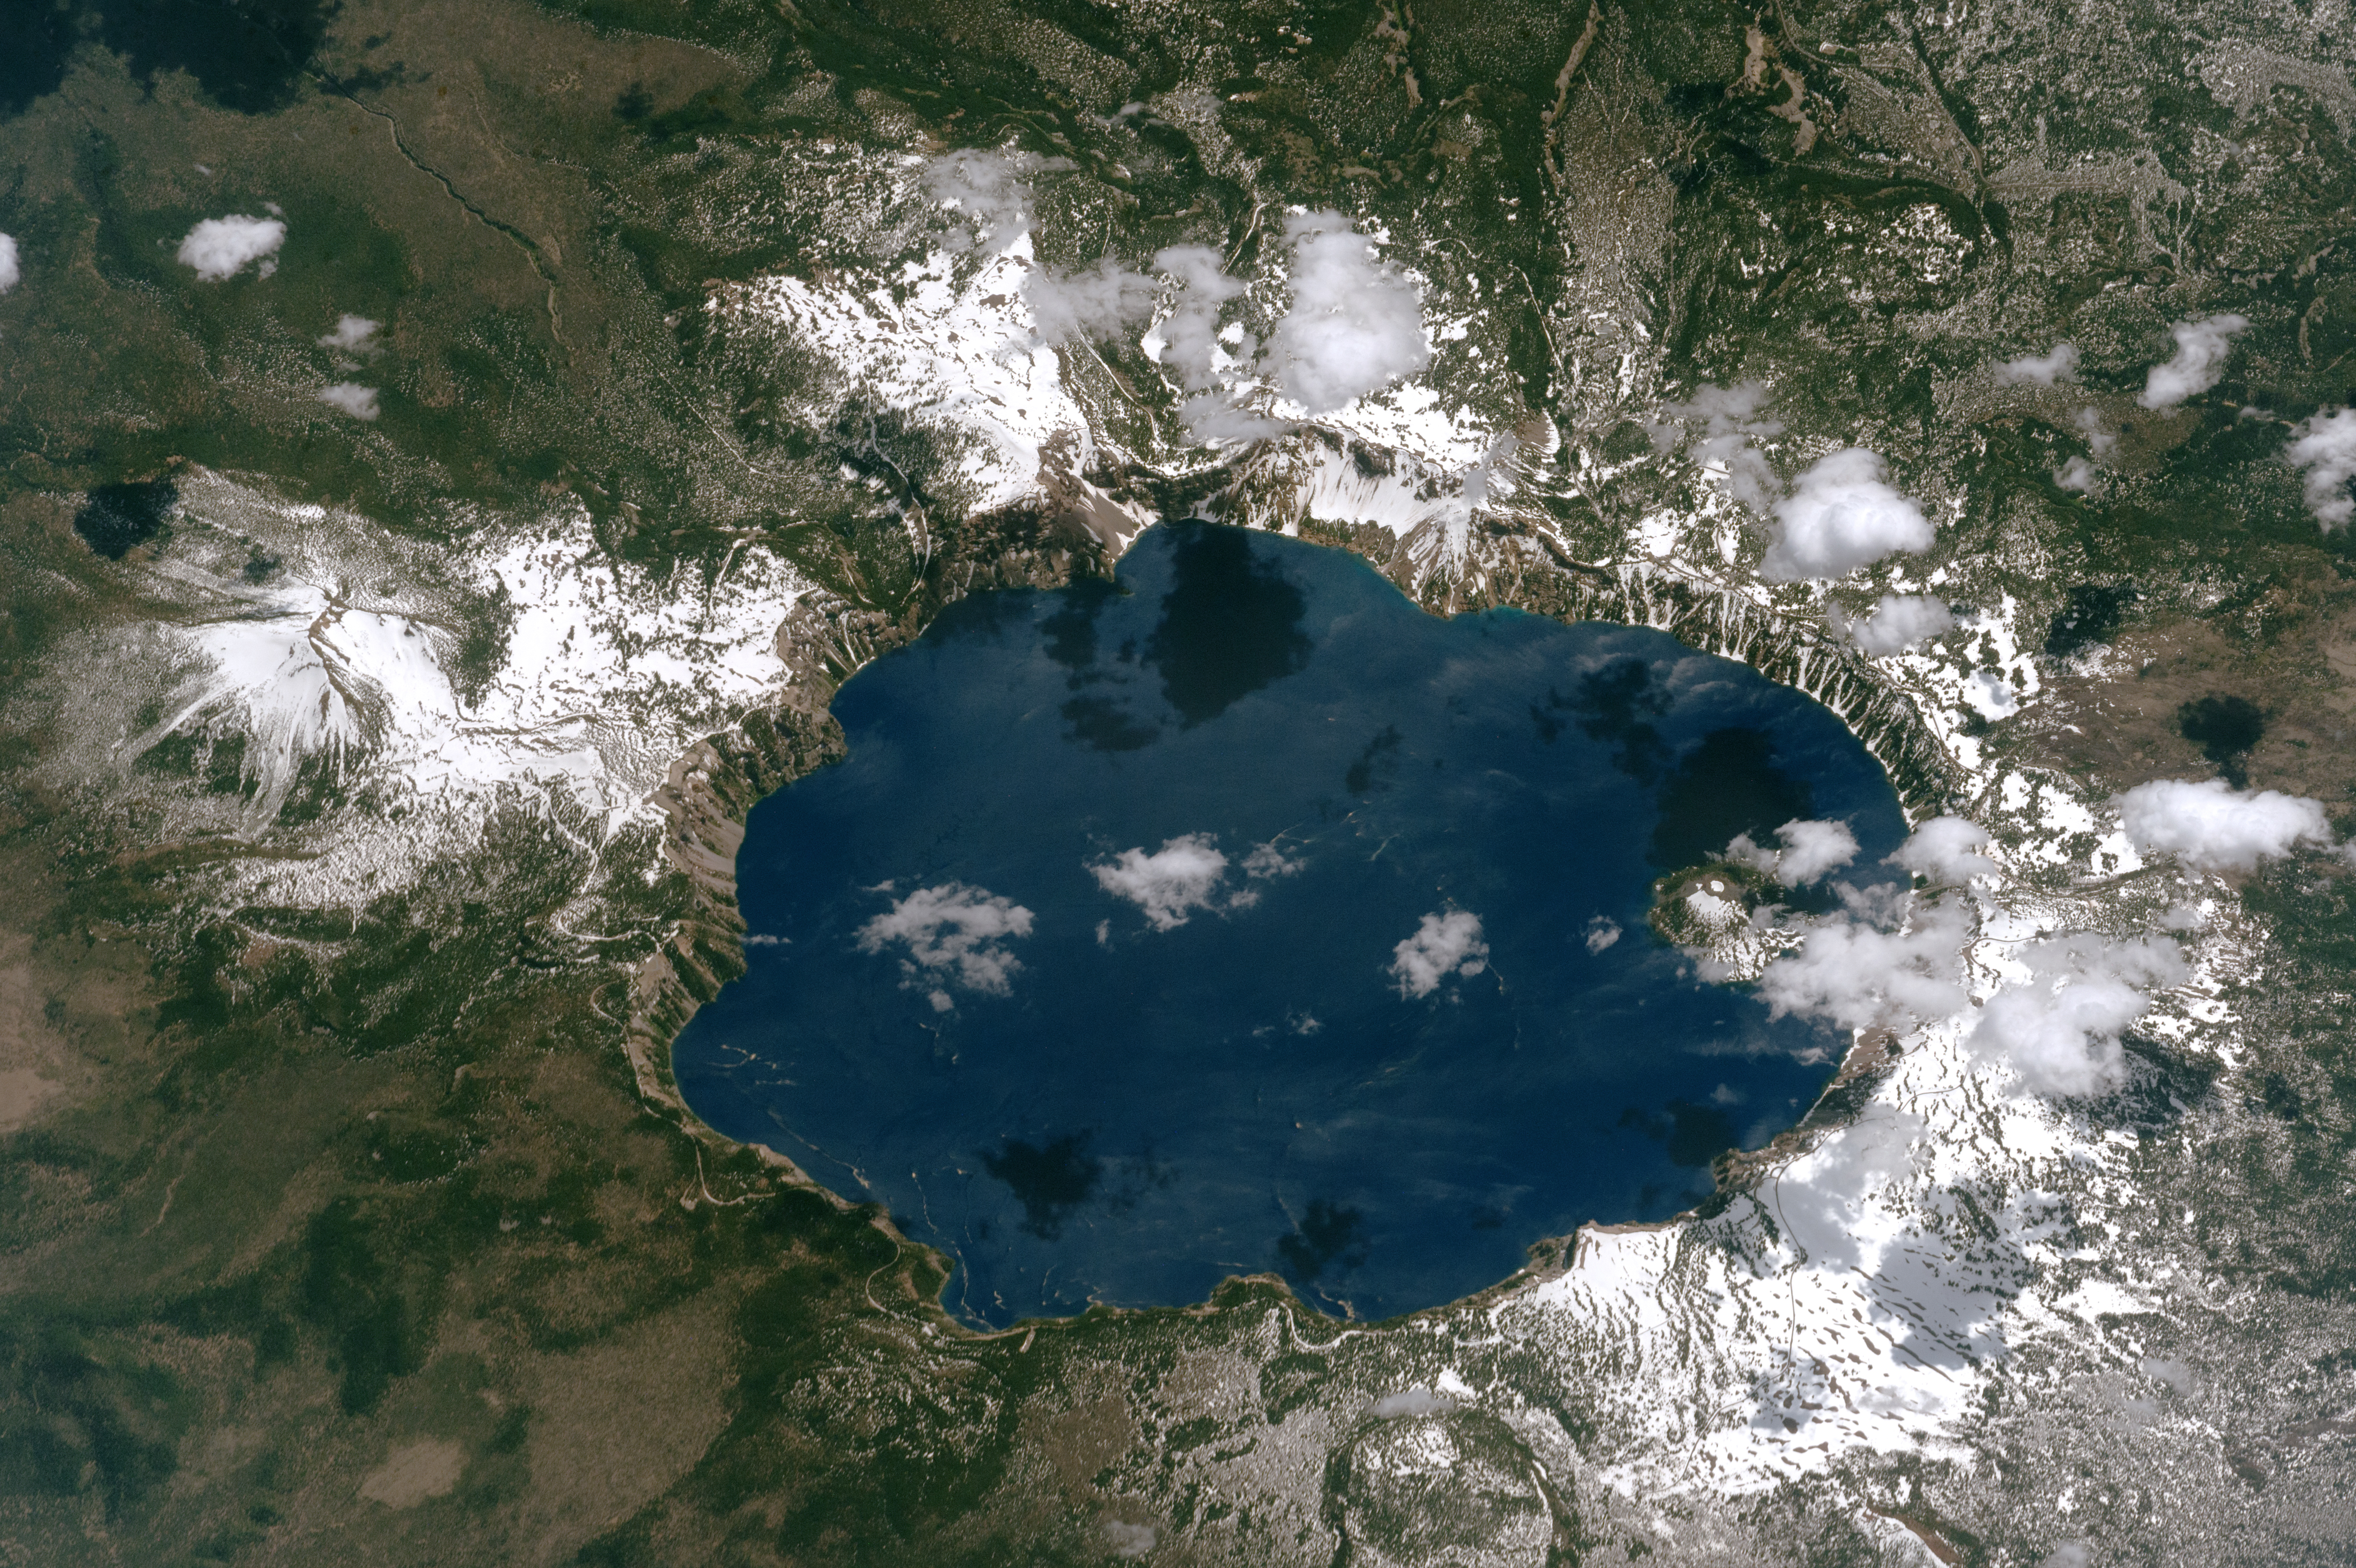 NASA Photo Of Crater Lake The Deepest Lake In The US YubaNet - Us map crater lake